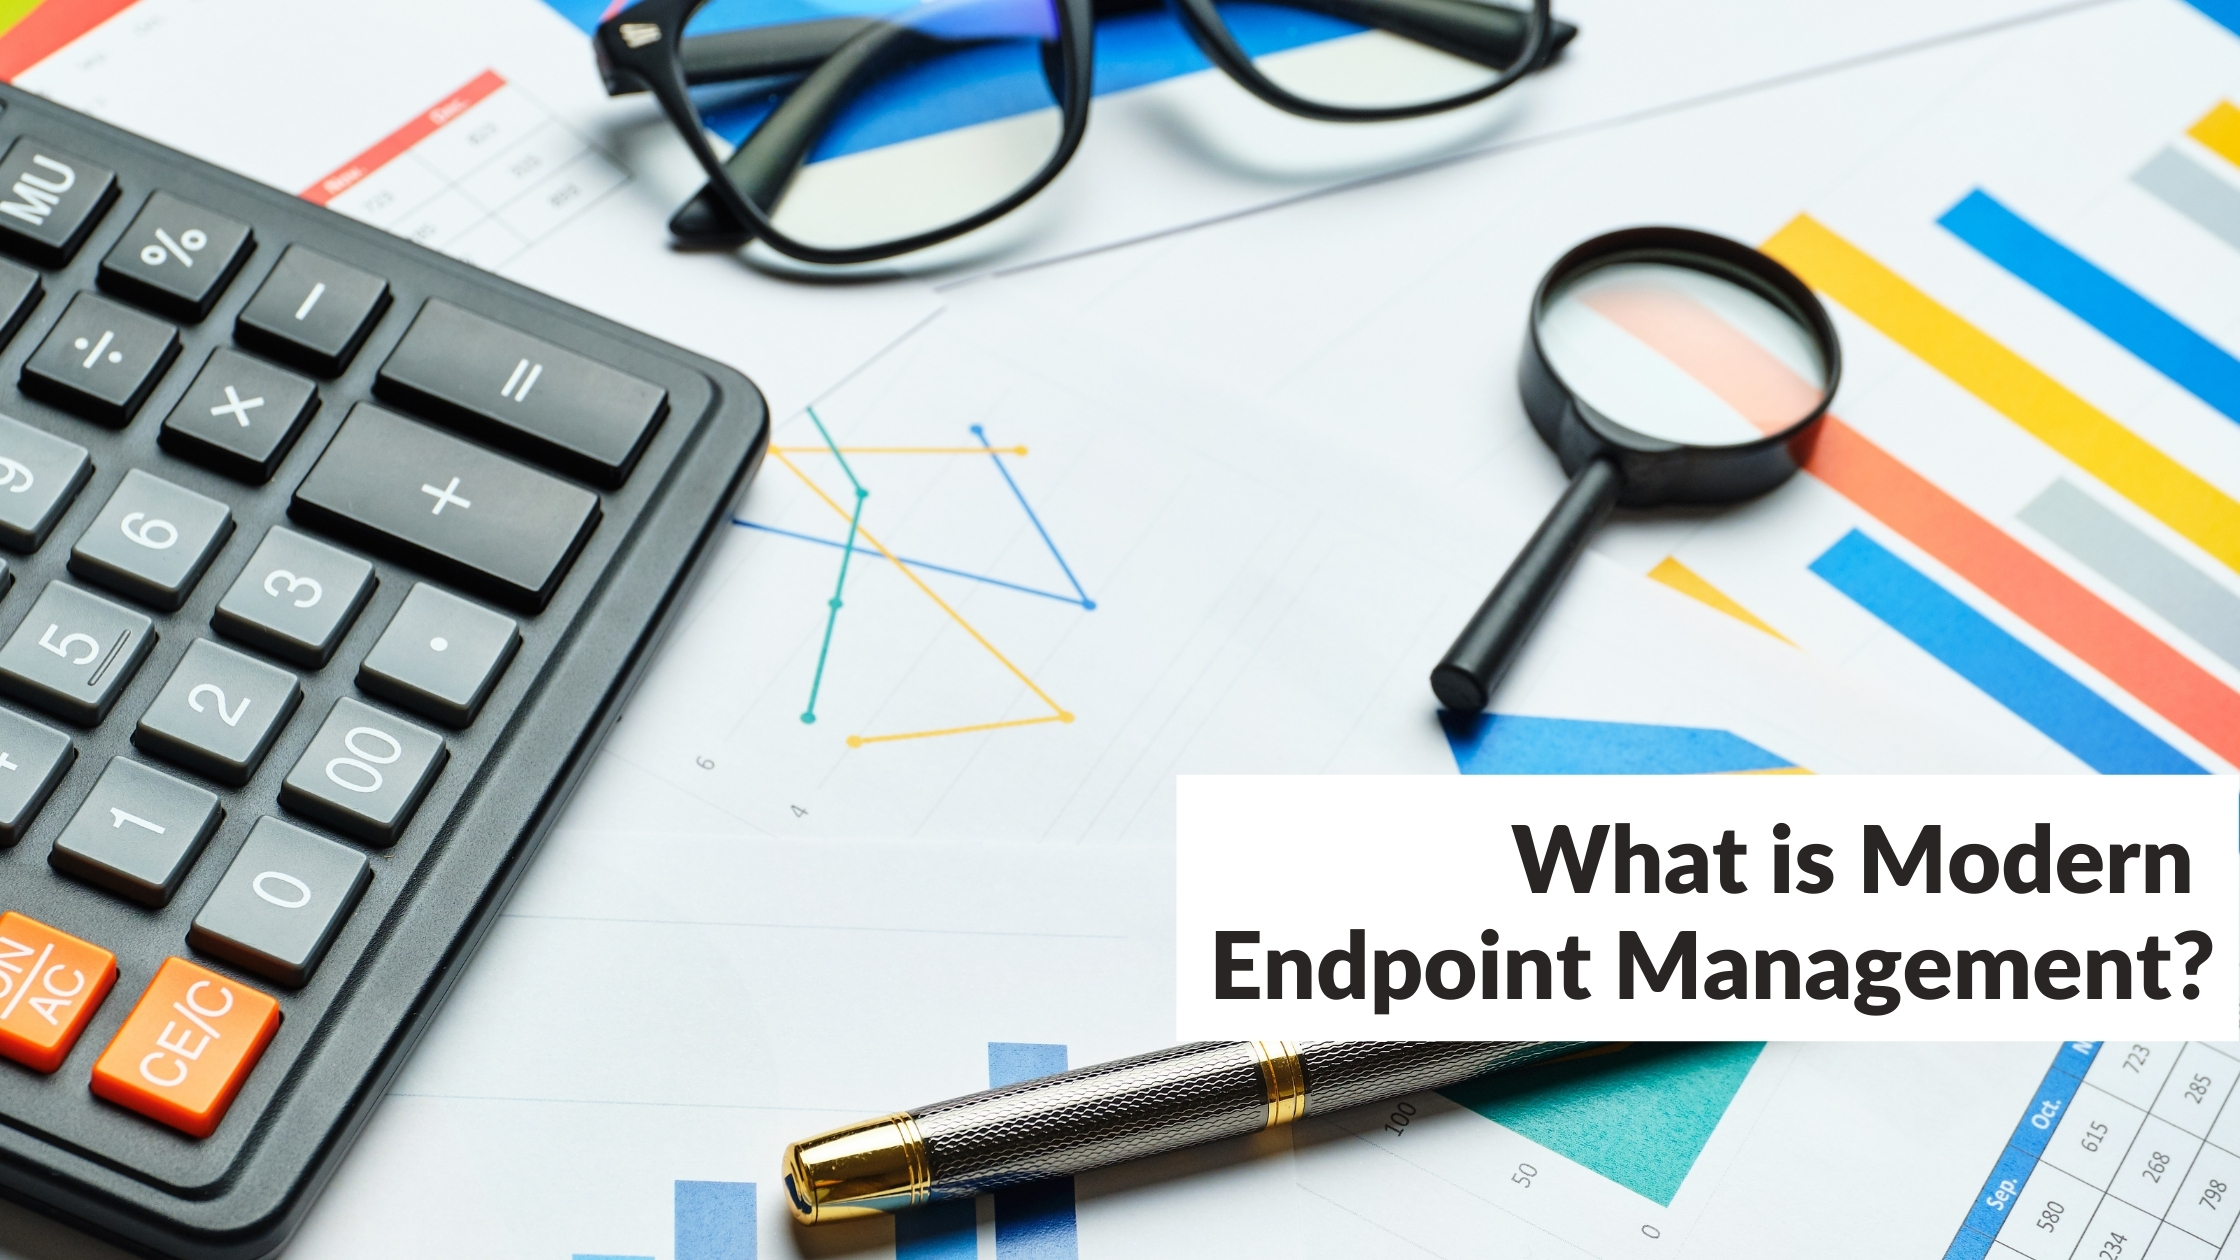 What is Modern Endpoint Management